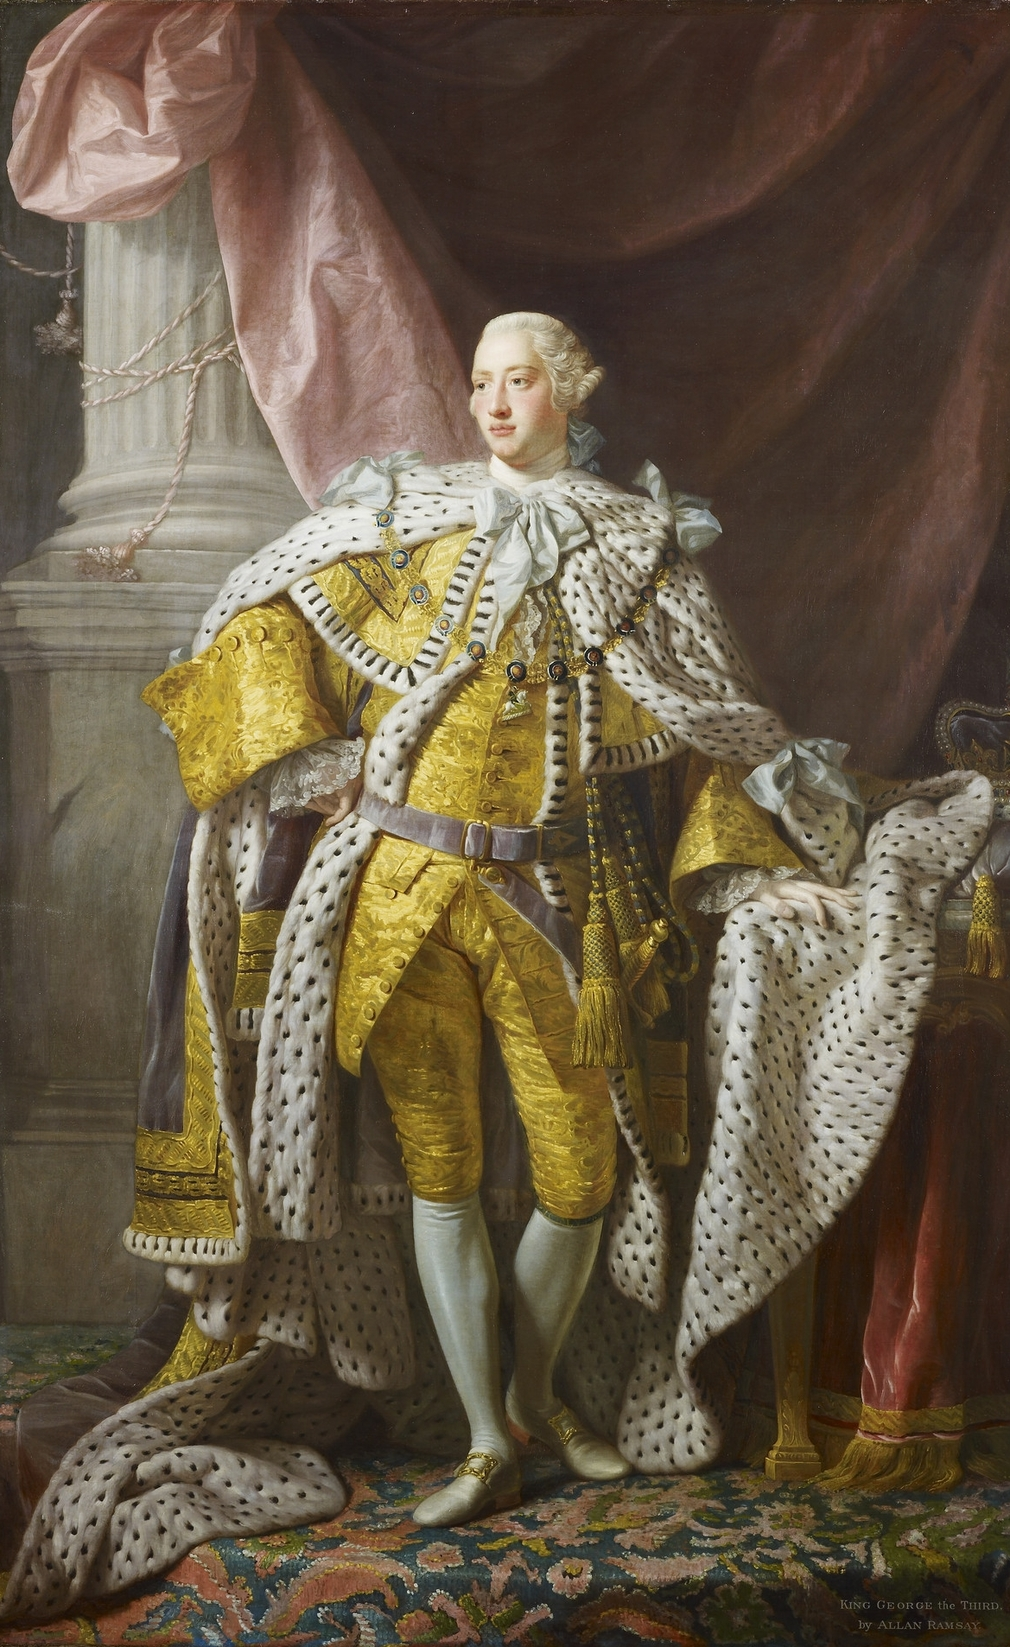 Allan Ramsay, State portrait of George III, 1761-2